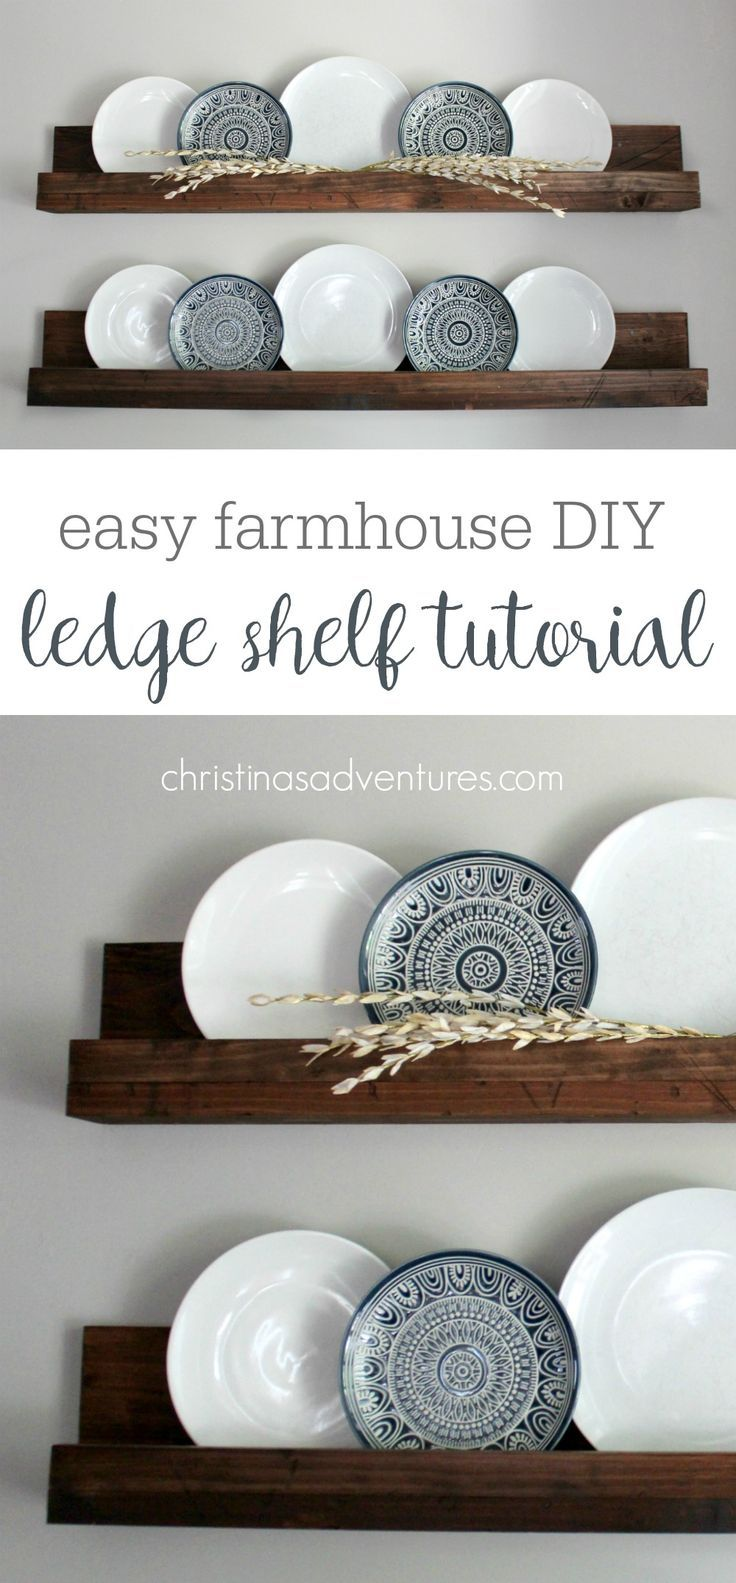 These farmhouse style shelves will take about 30 minutes & less than $20! Such a versatile DIY project - decor can be easily changed out every season! More